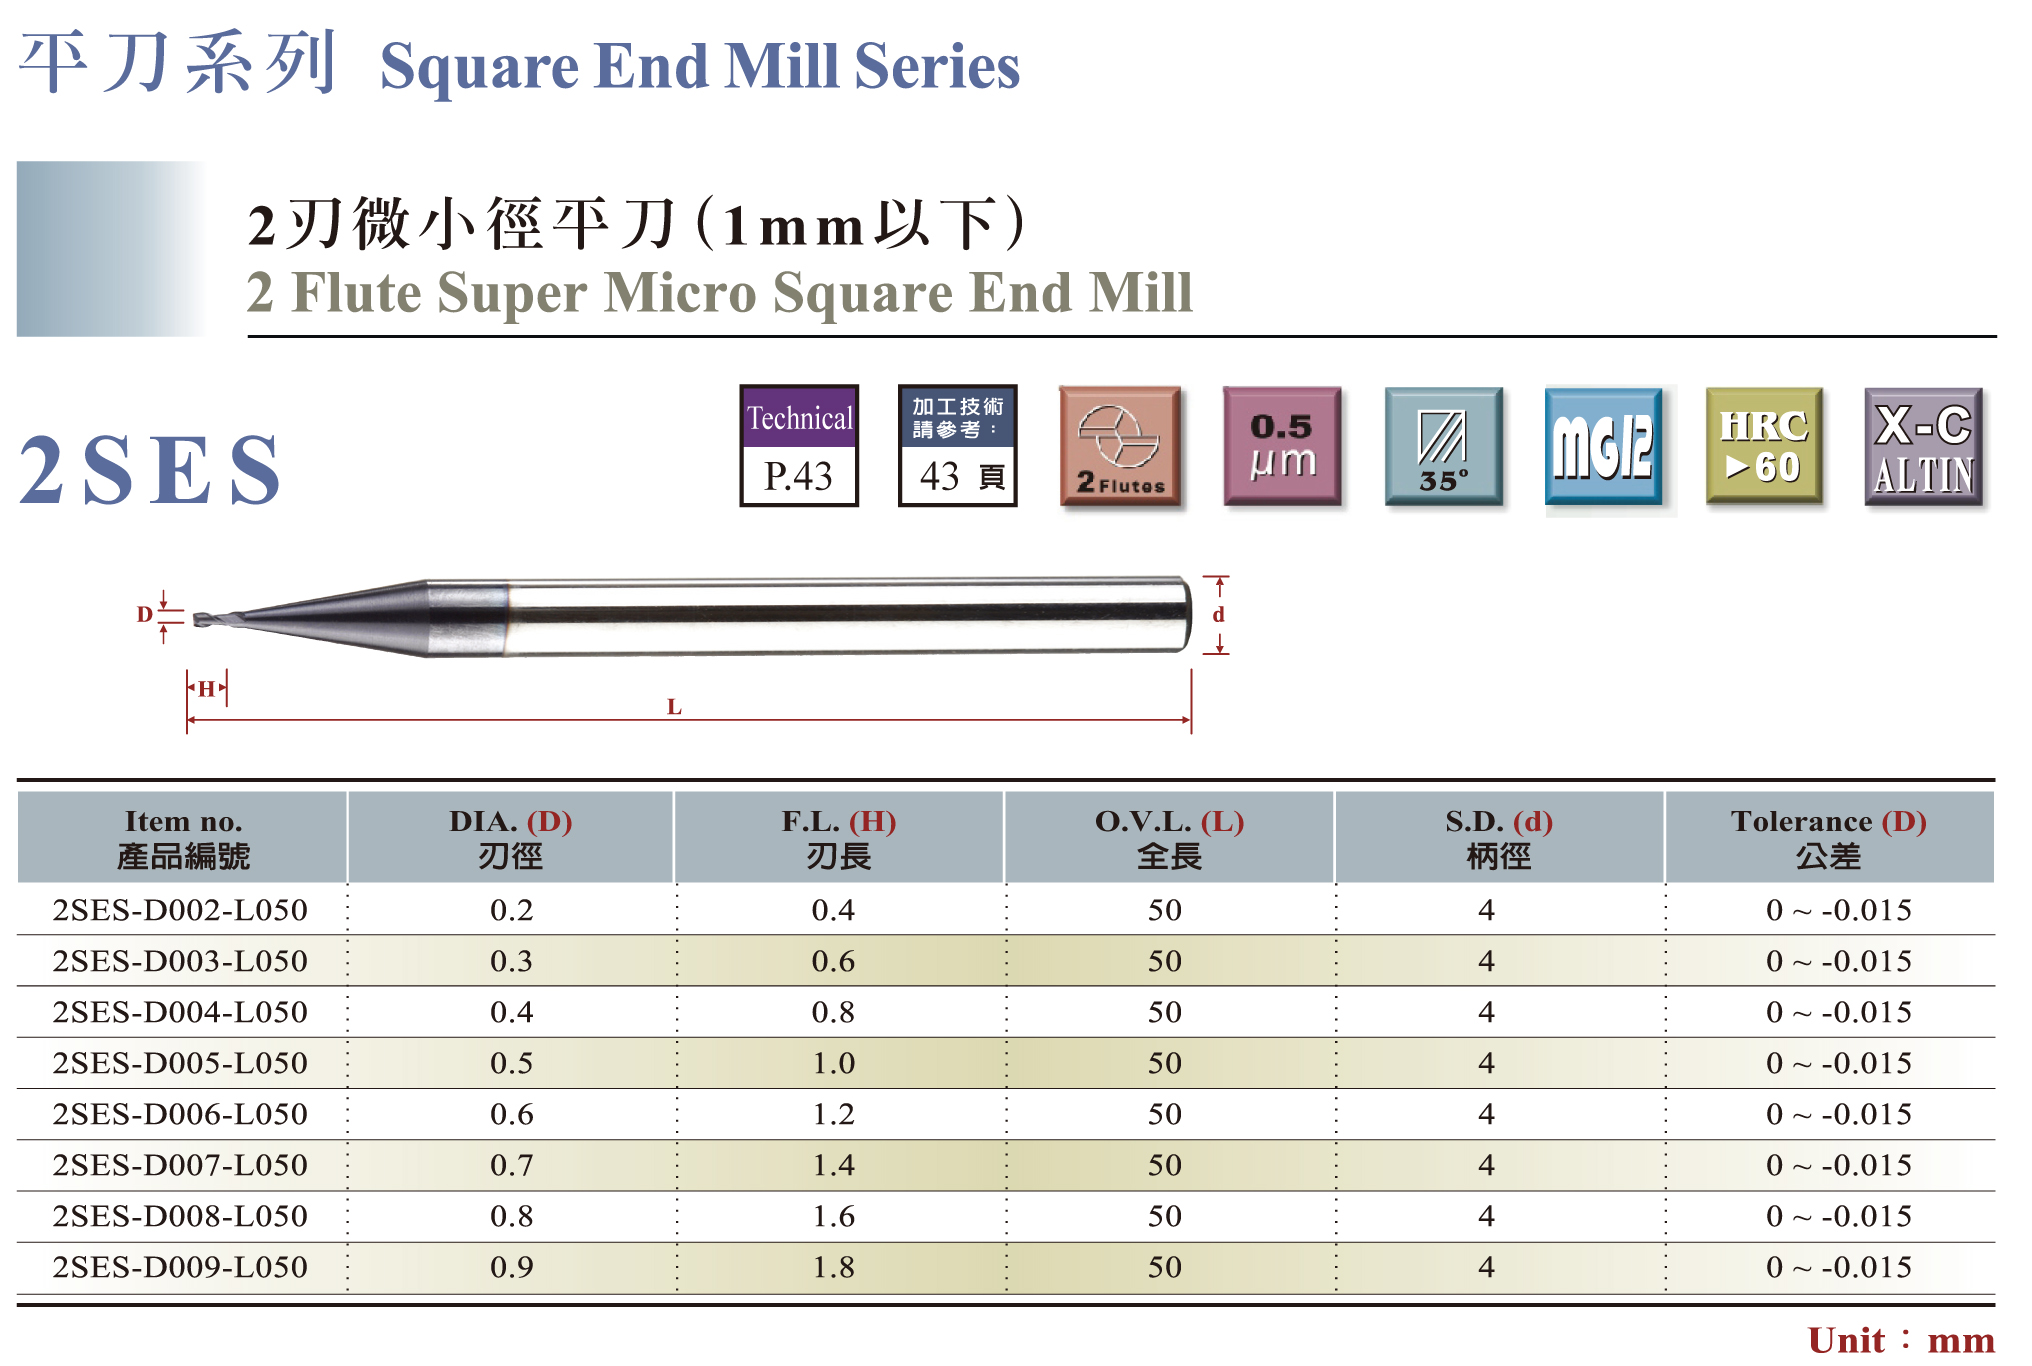 2 Flute Super Micro Square End Mill(under 1 mm)